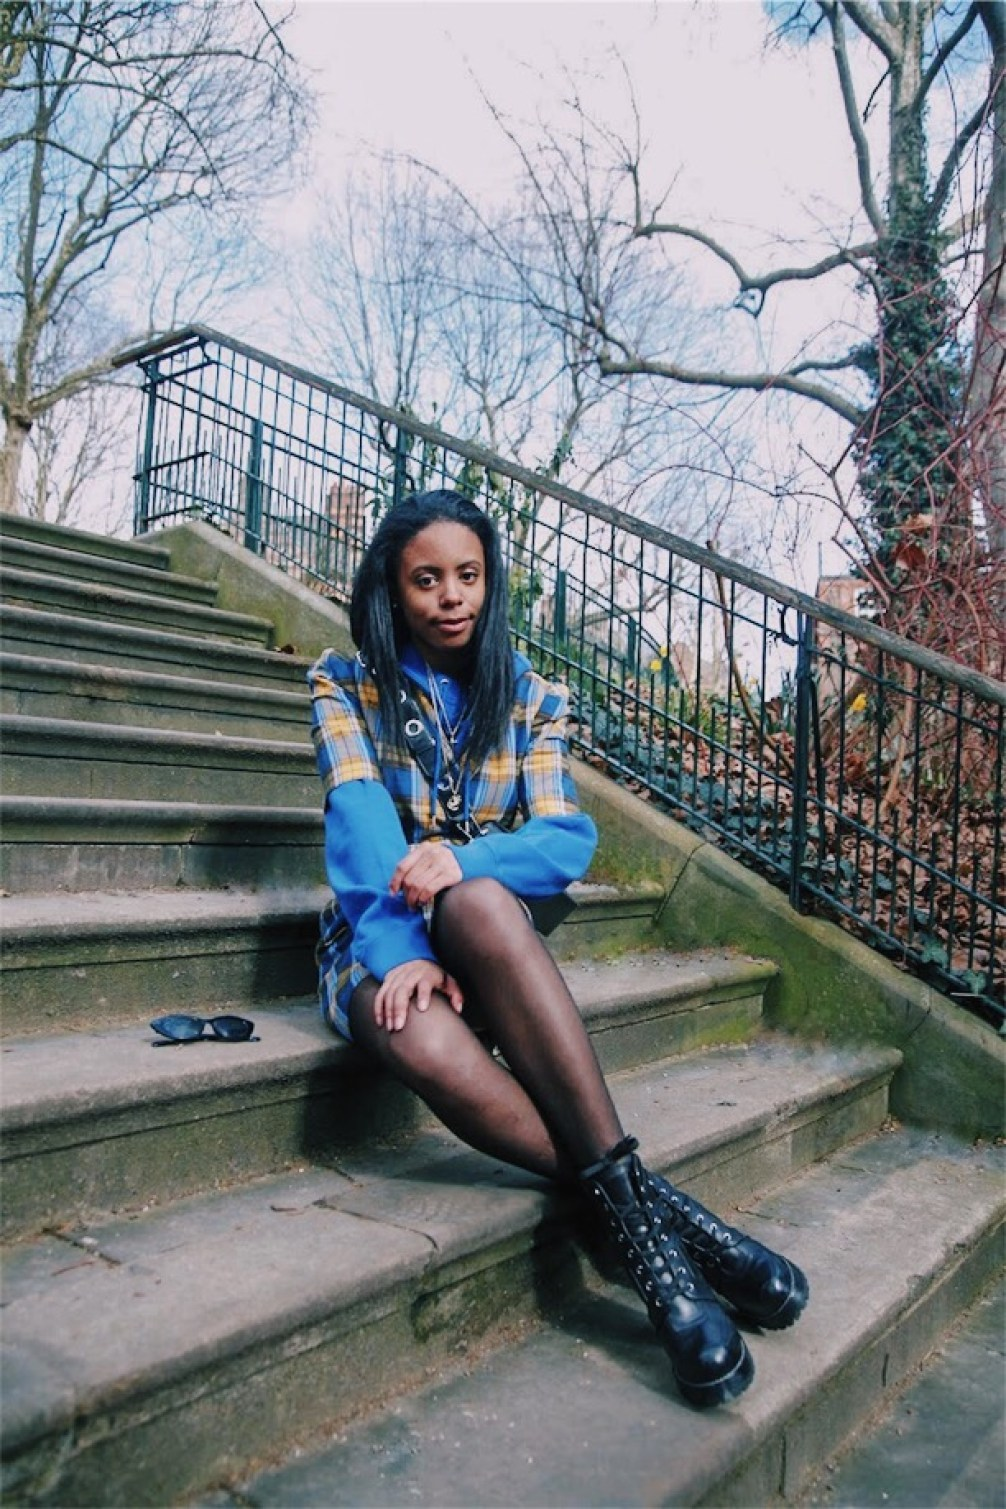 combat boots spring accessories vsco shoreditch london street style plaid 90s